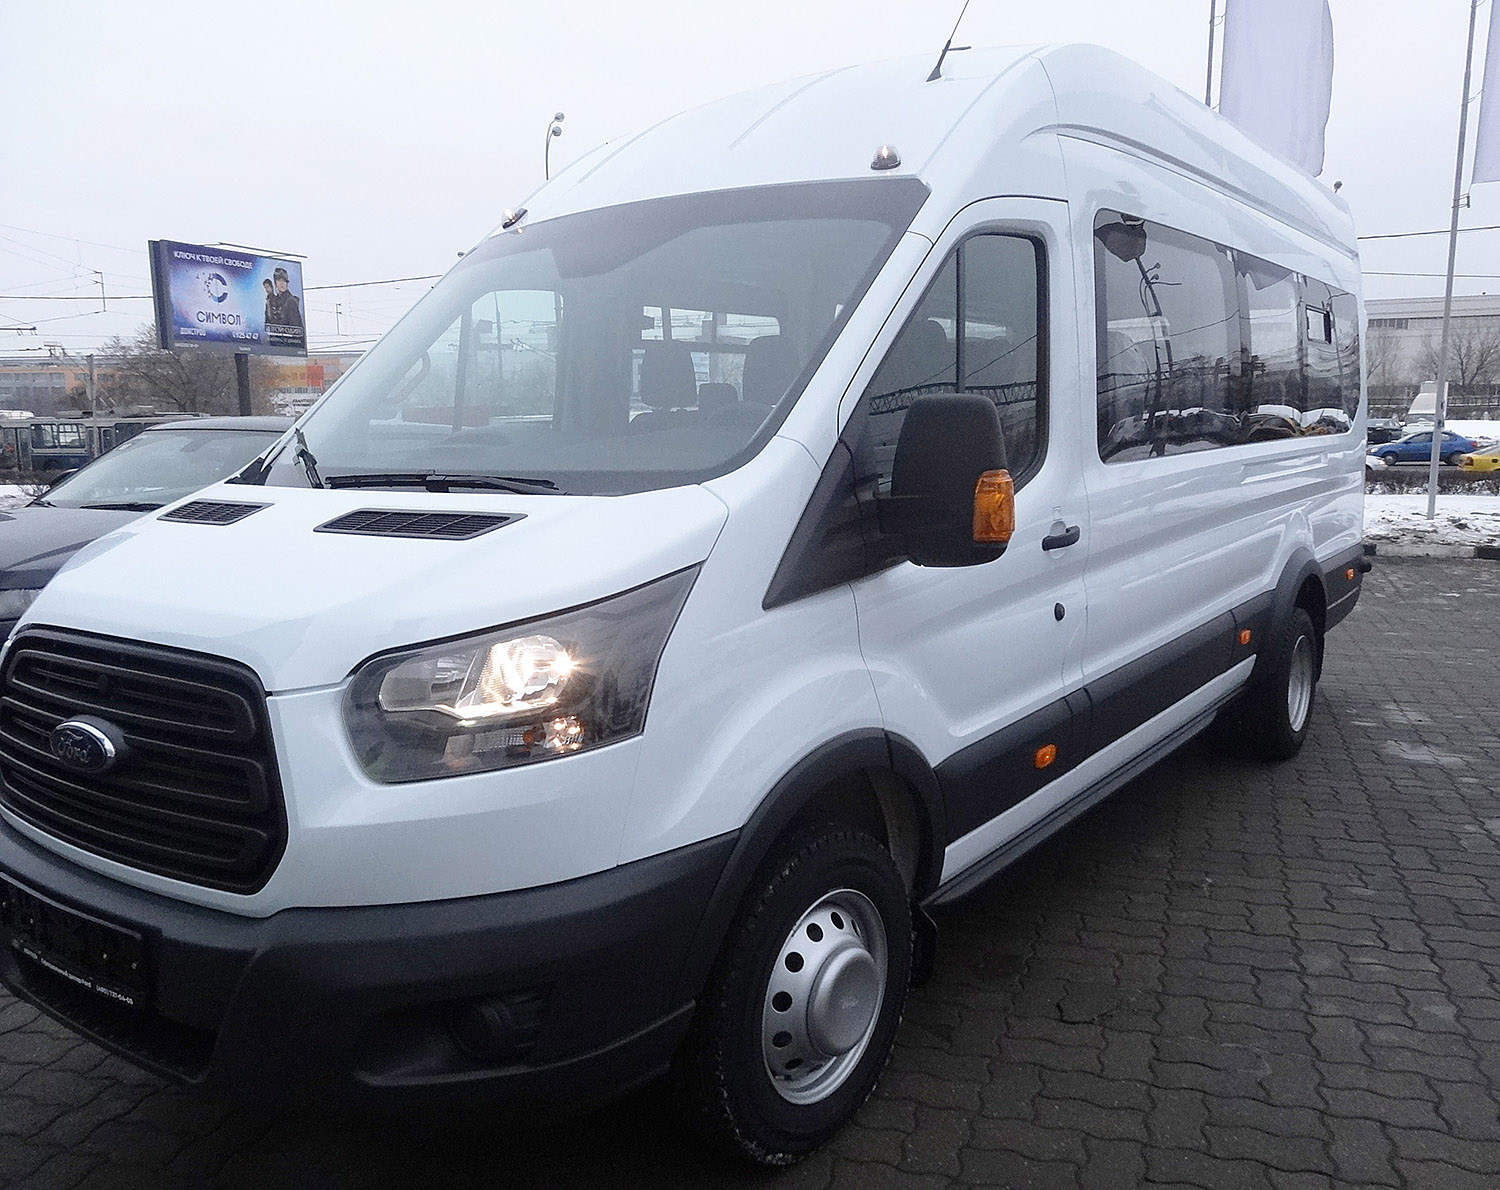 ЯрКамп-Лизинг произвела передачу на условиях лизинга микроавтобуса Ford Transit Shuttle Bus